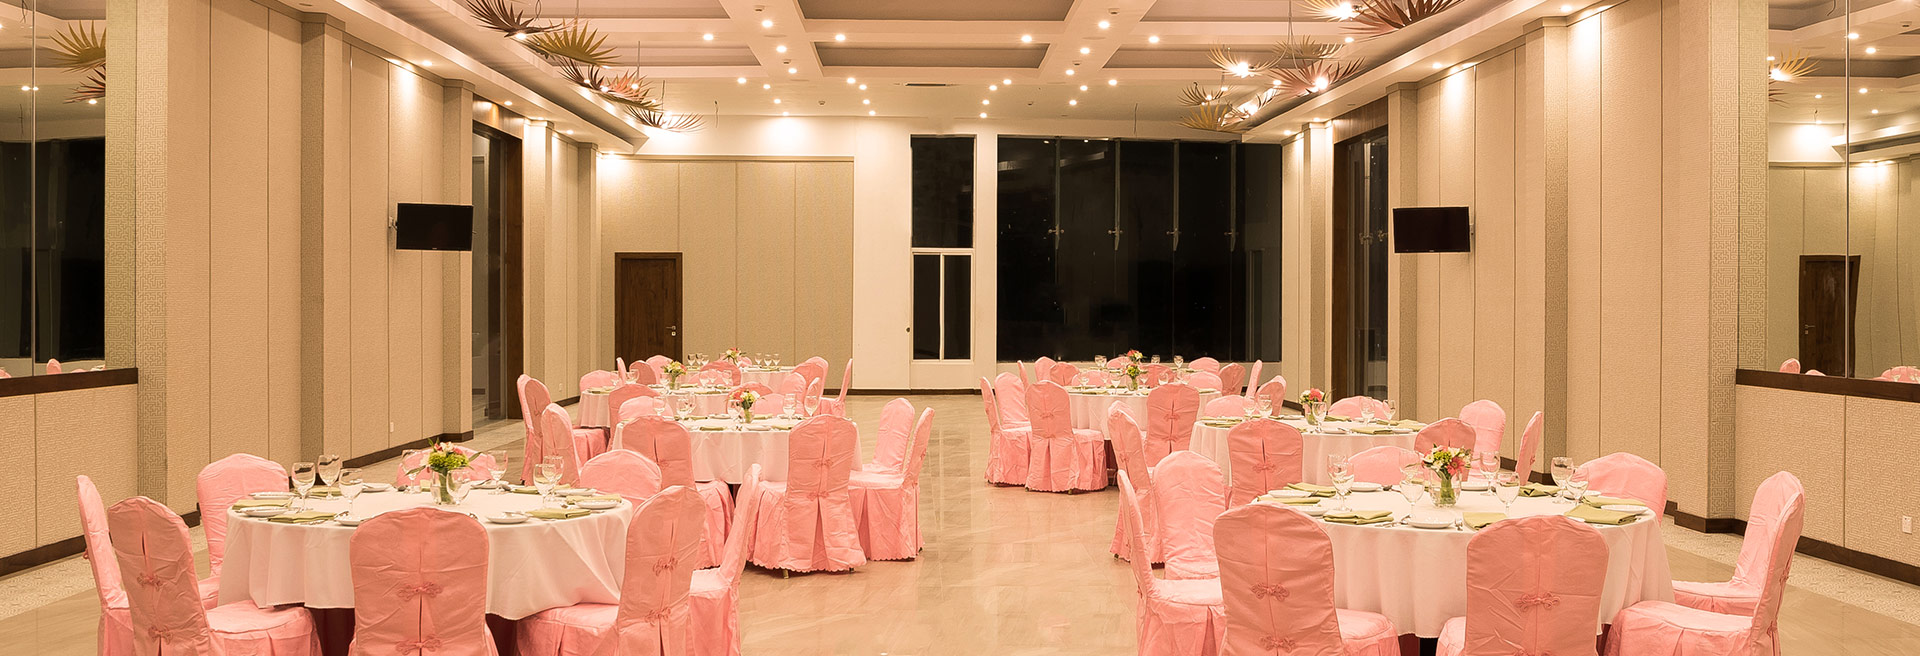 Banquet Hall in Jaffna